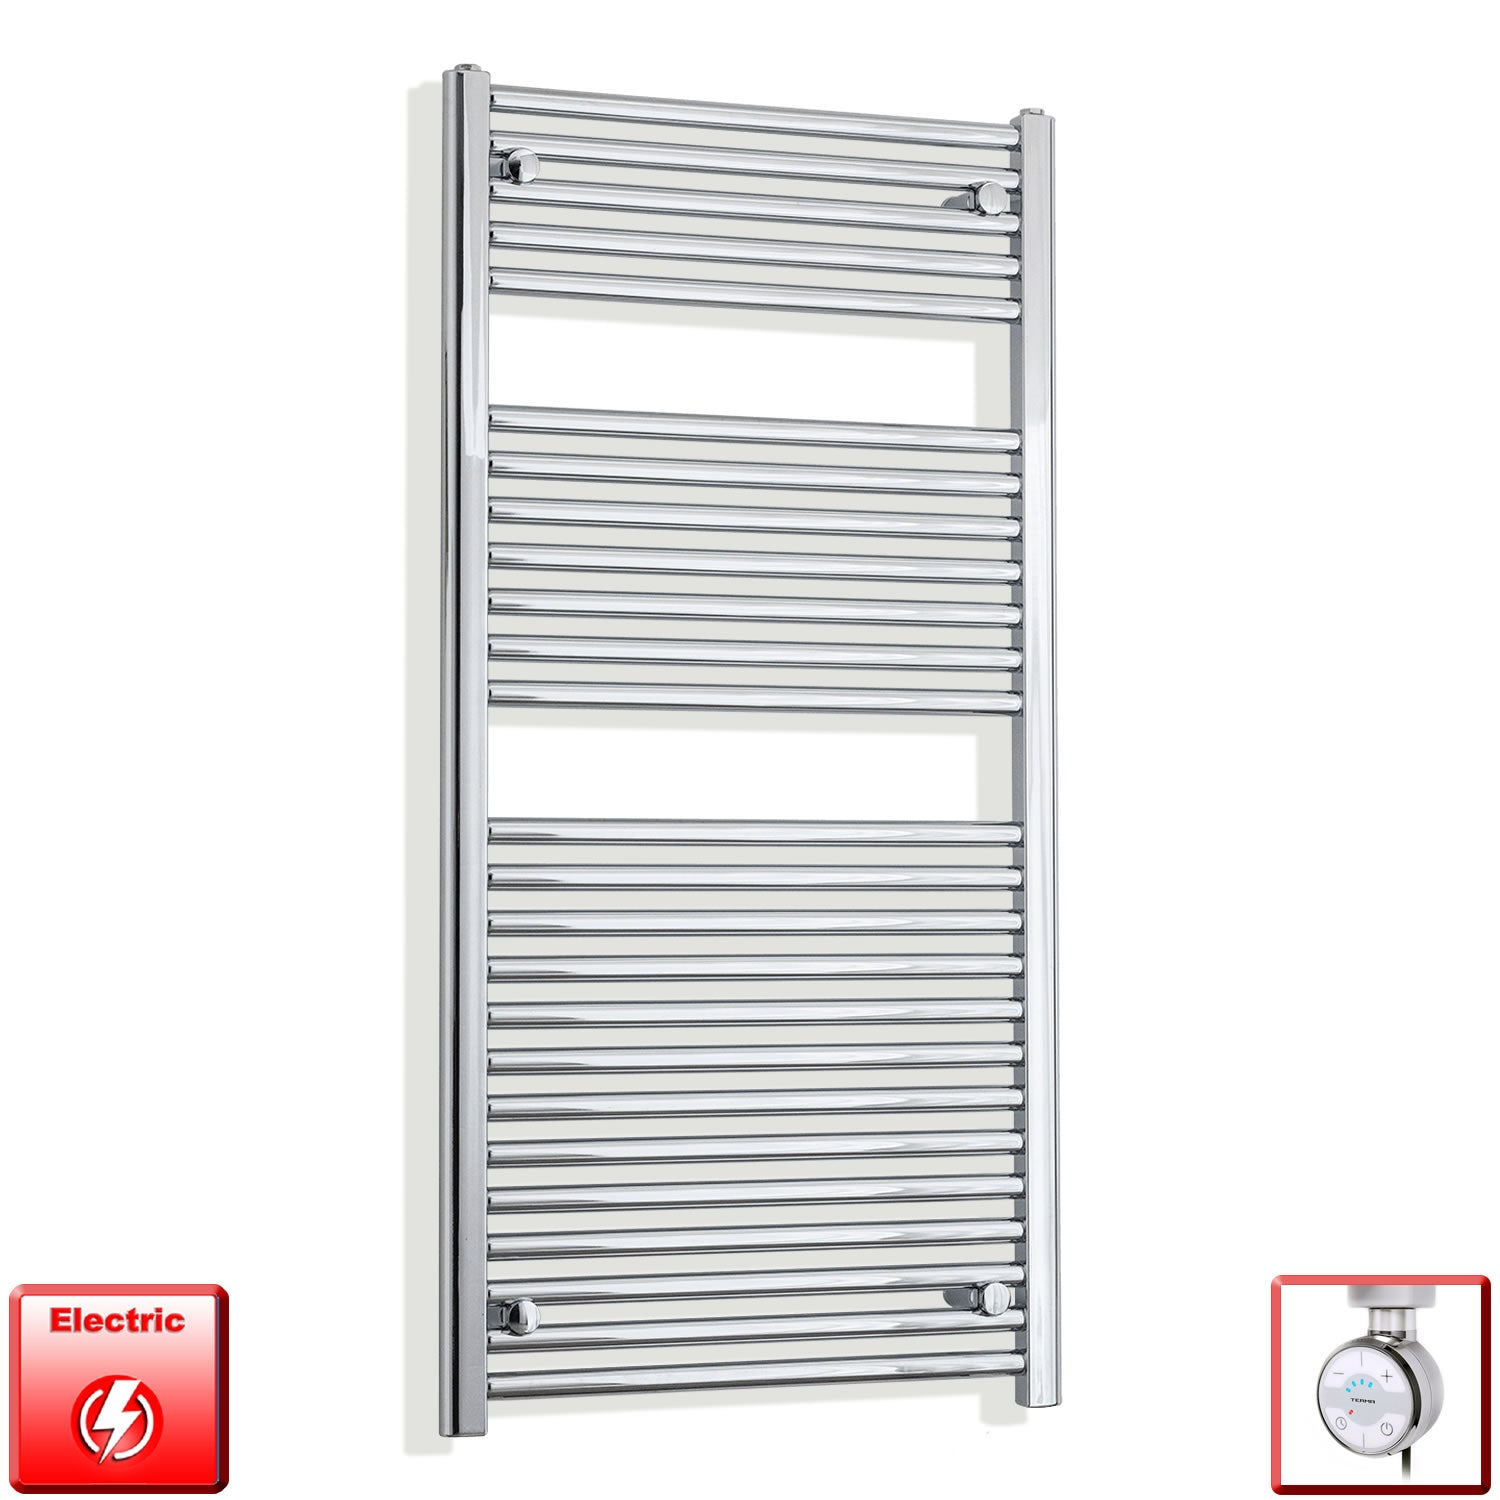 500mm Wide 1200mm High Flat Chrome Pre-Filled Electric Heated Towel Rail Radiator HTR,MOA Thermostatic Element